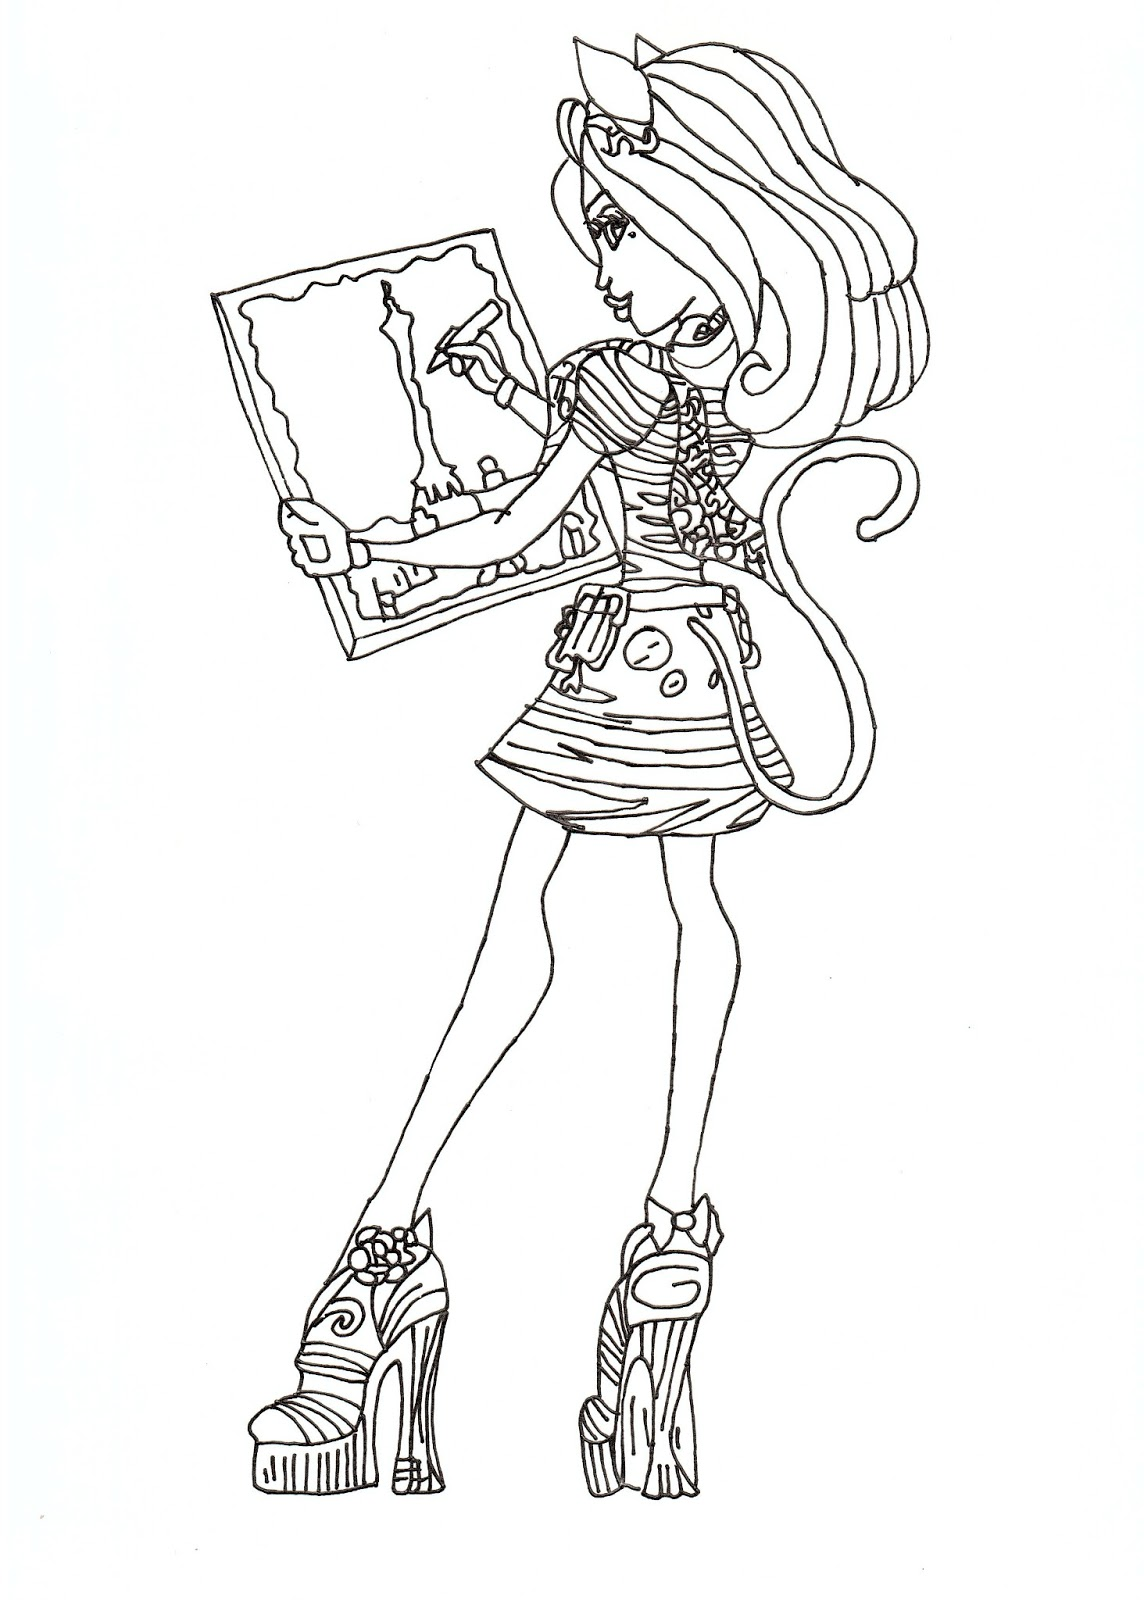 Free Printable Monster High Coloring Pages: Catrine De Mew ...